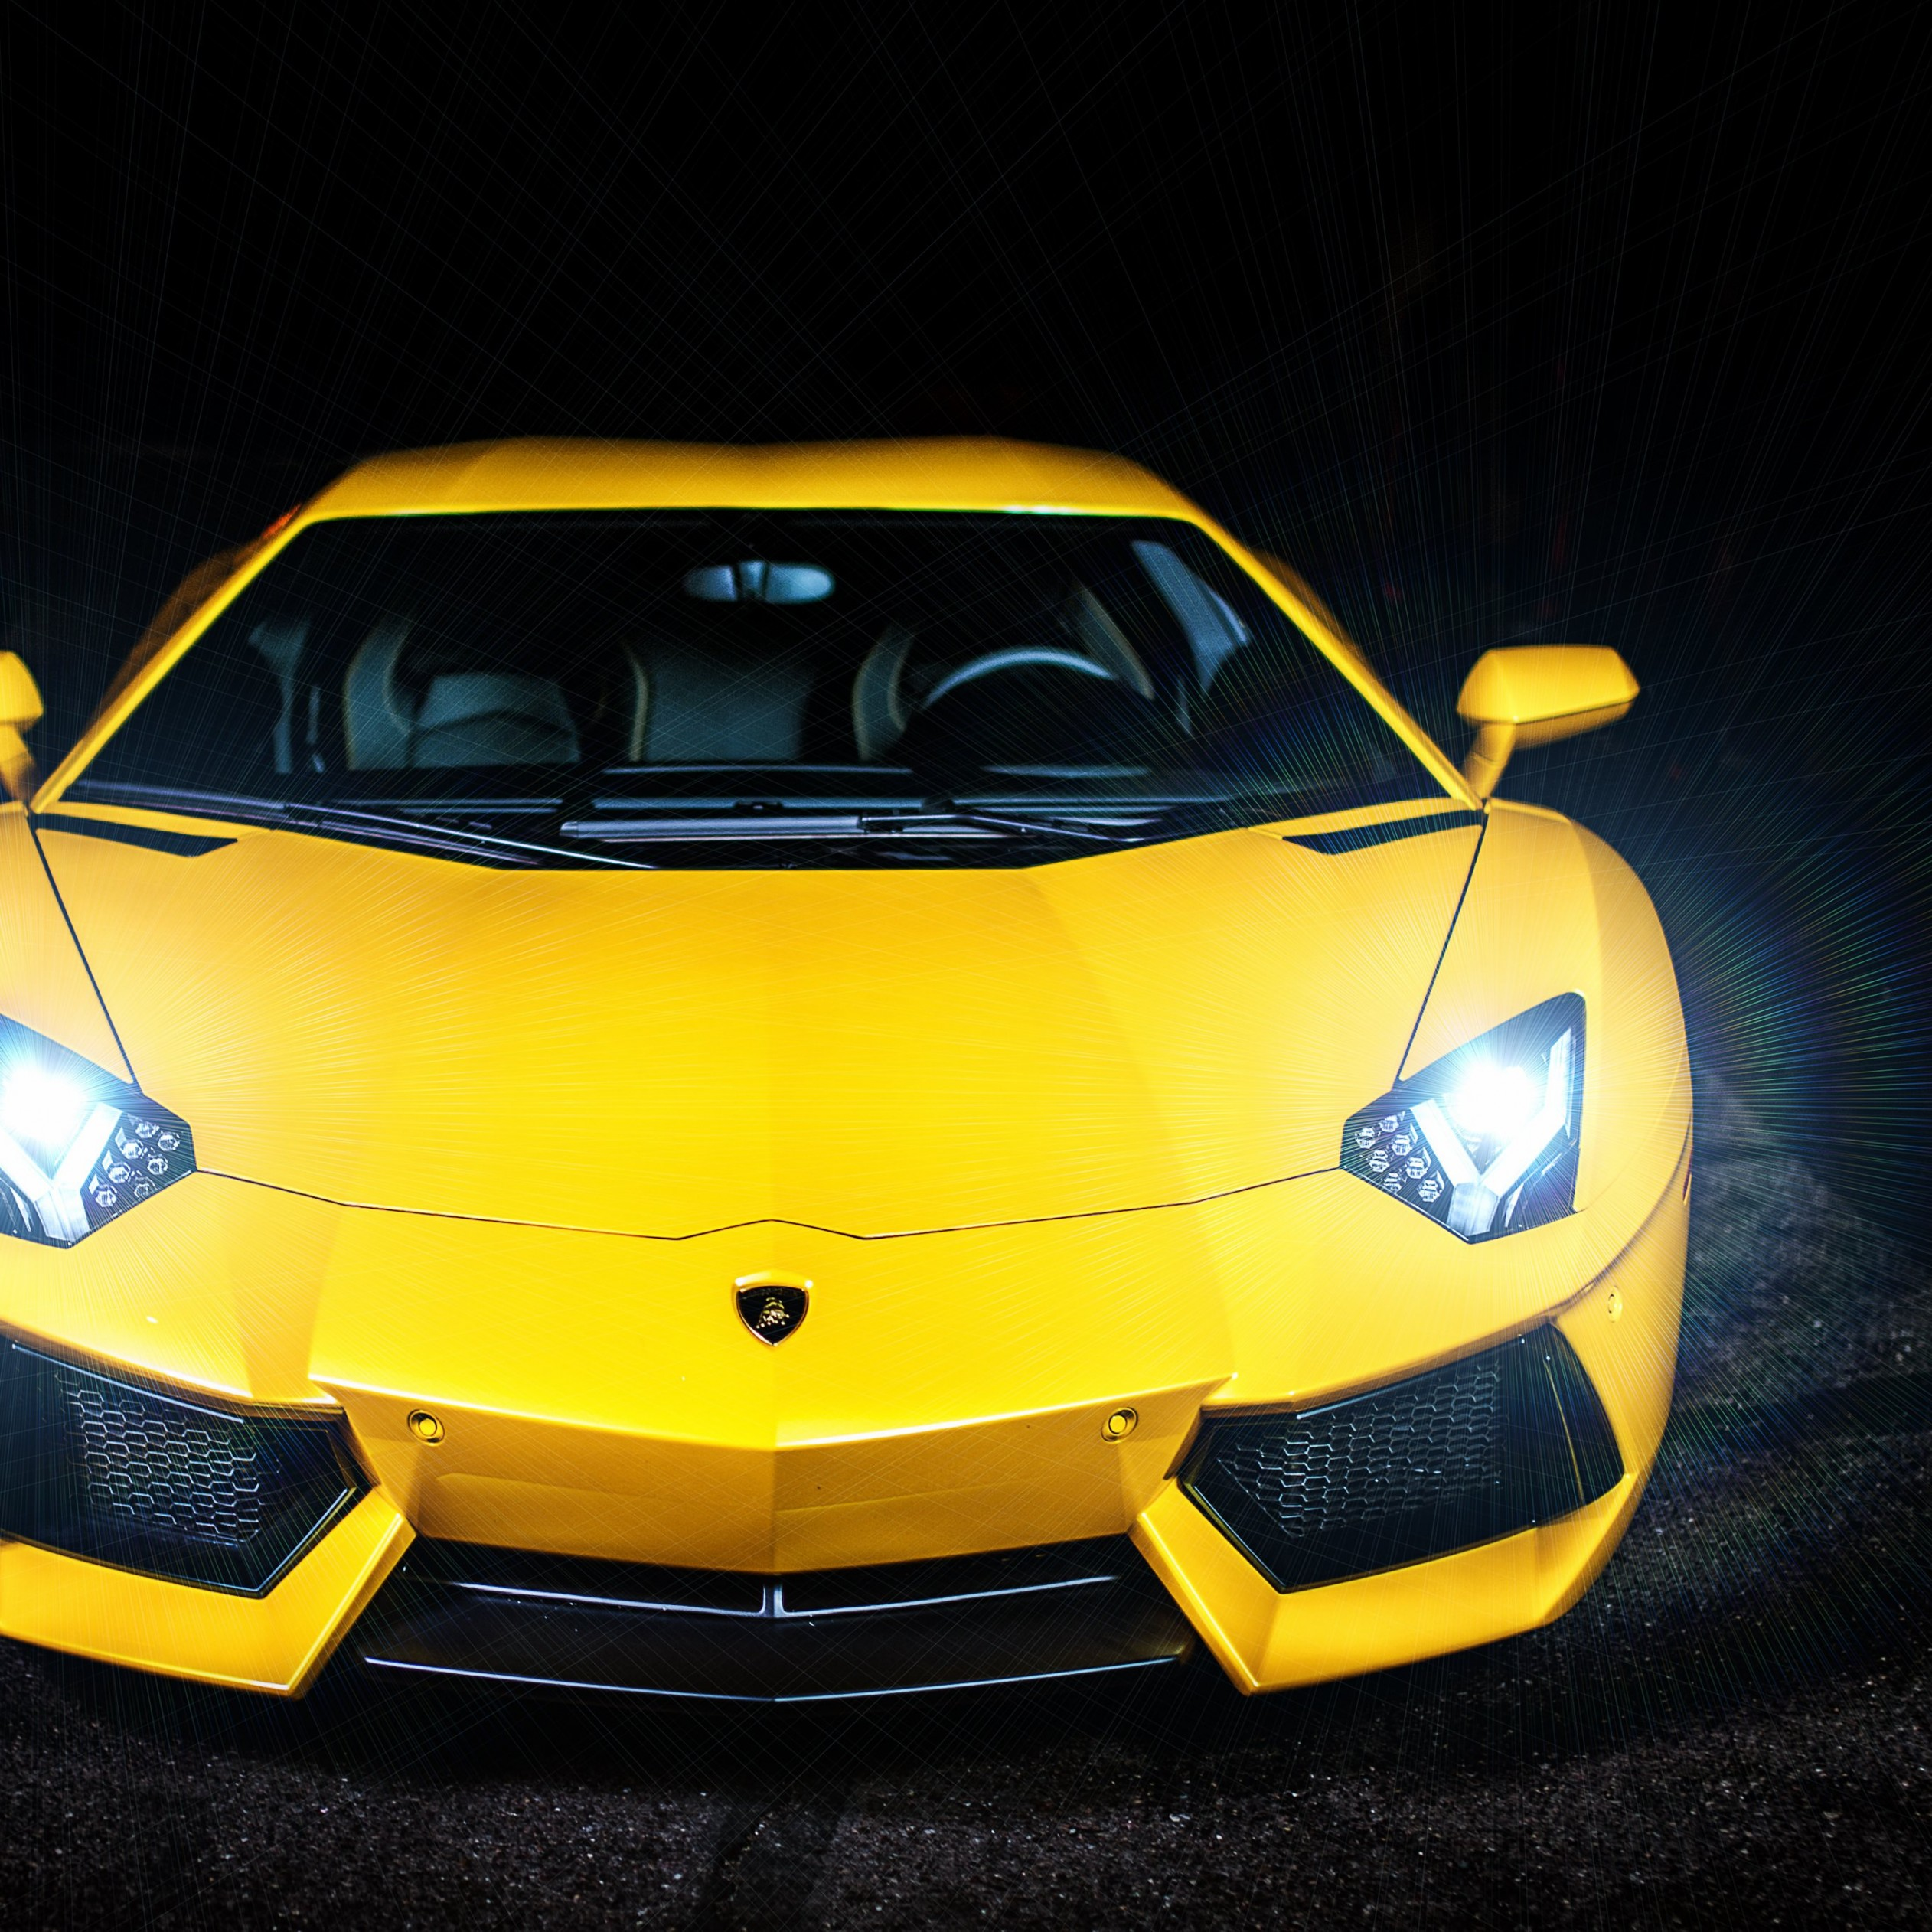 Lamborghini Murcielago LP670 Front View Wallpaper for Apple iPad 4